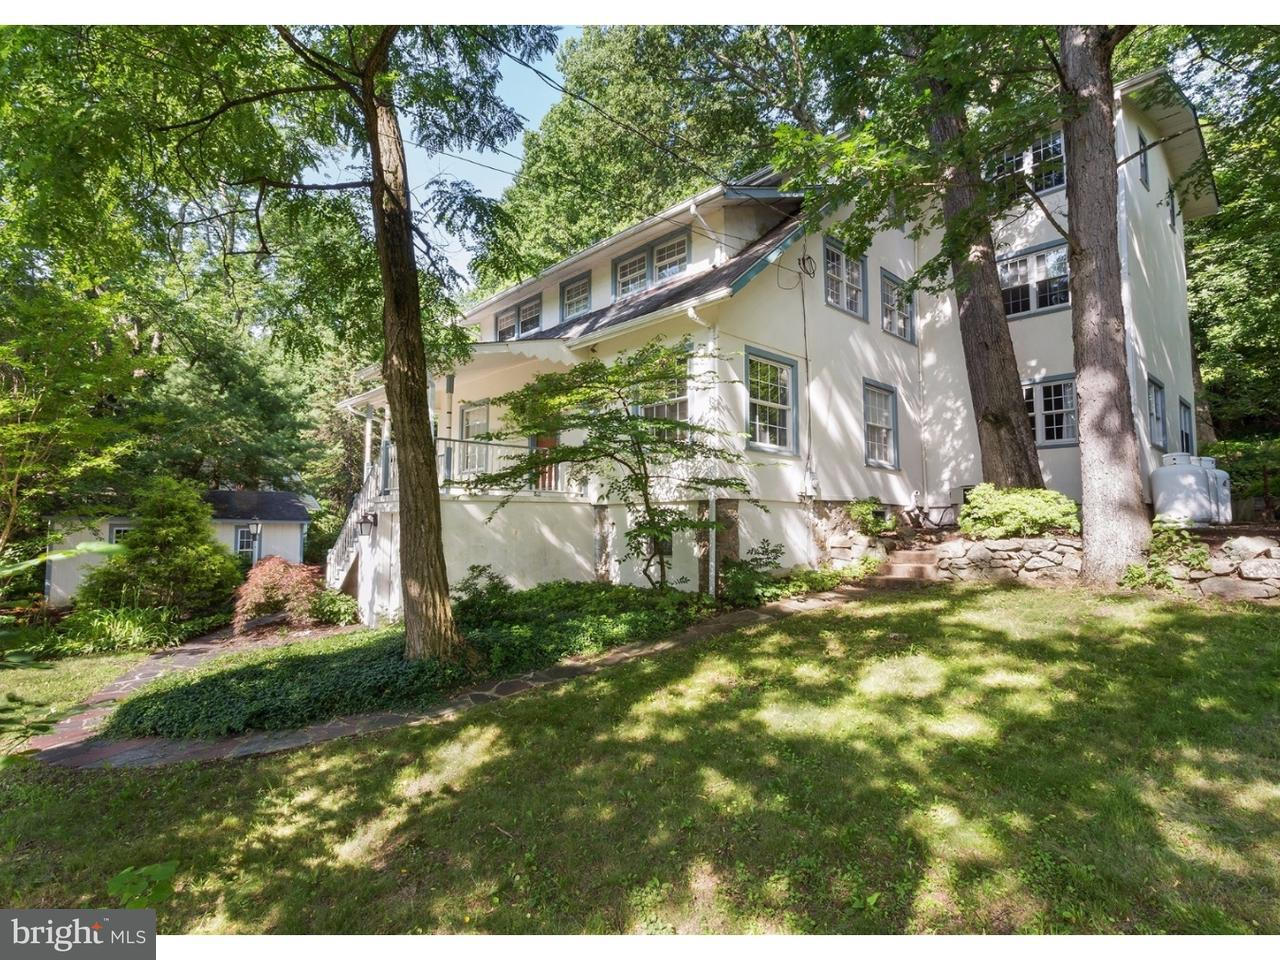 Single Family Home for Sale at 145 FAIRVIEW Avenue High Bridge, New Jersey 08829 United States